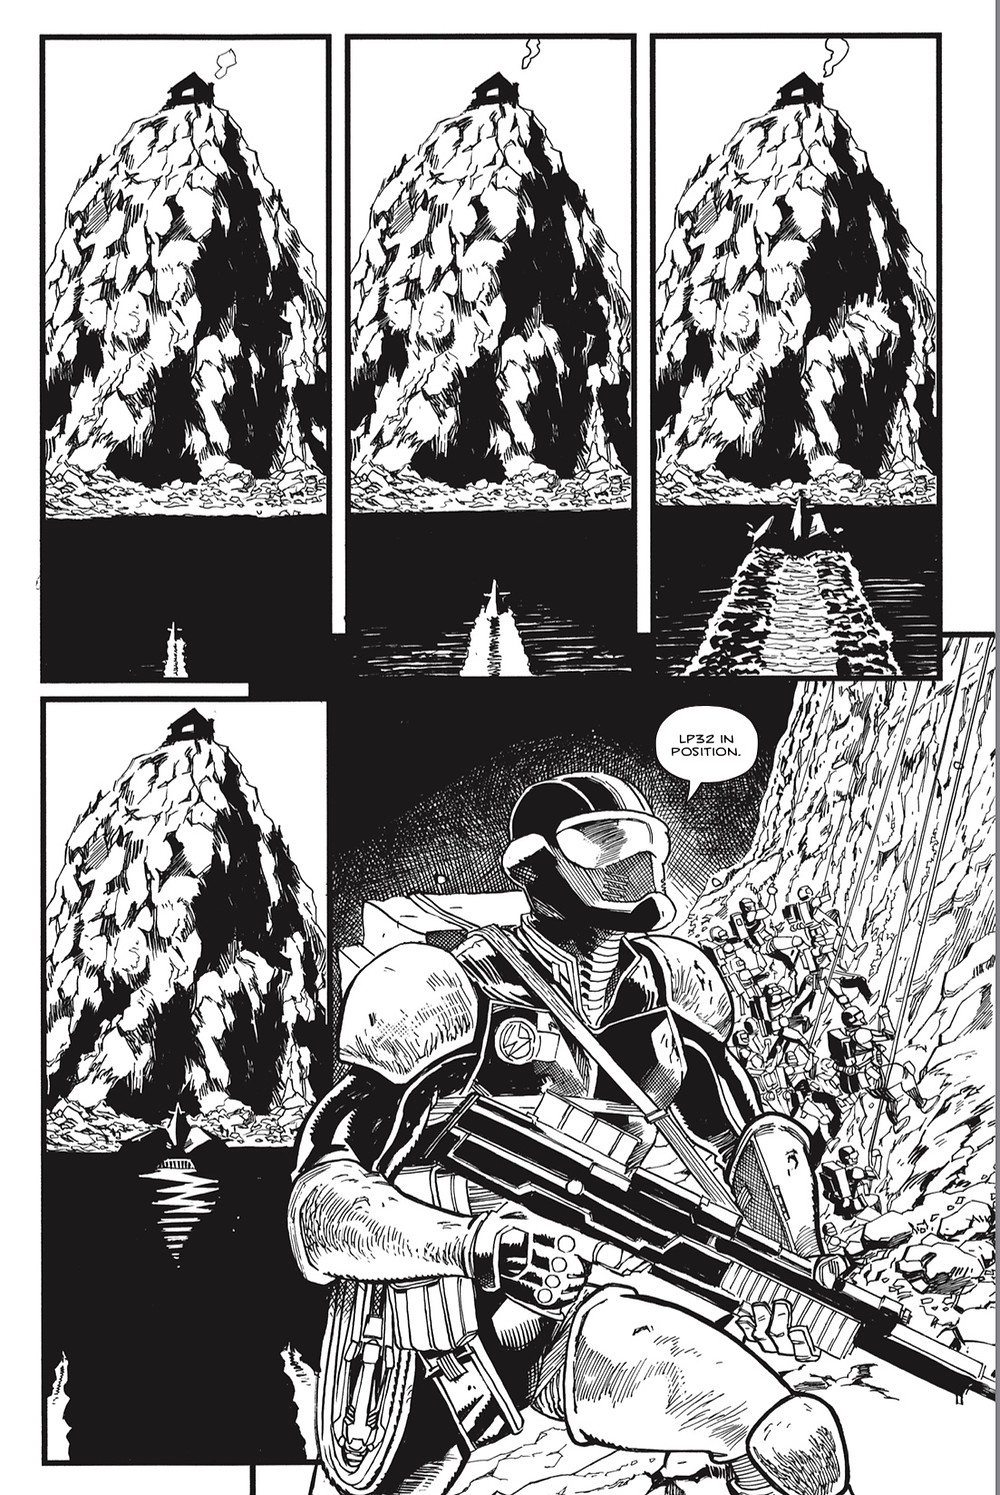 Midwinter, issue #1, page 15, UK Comics Creative, Whitehead/Holden